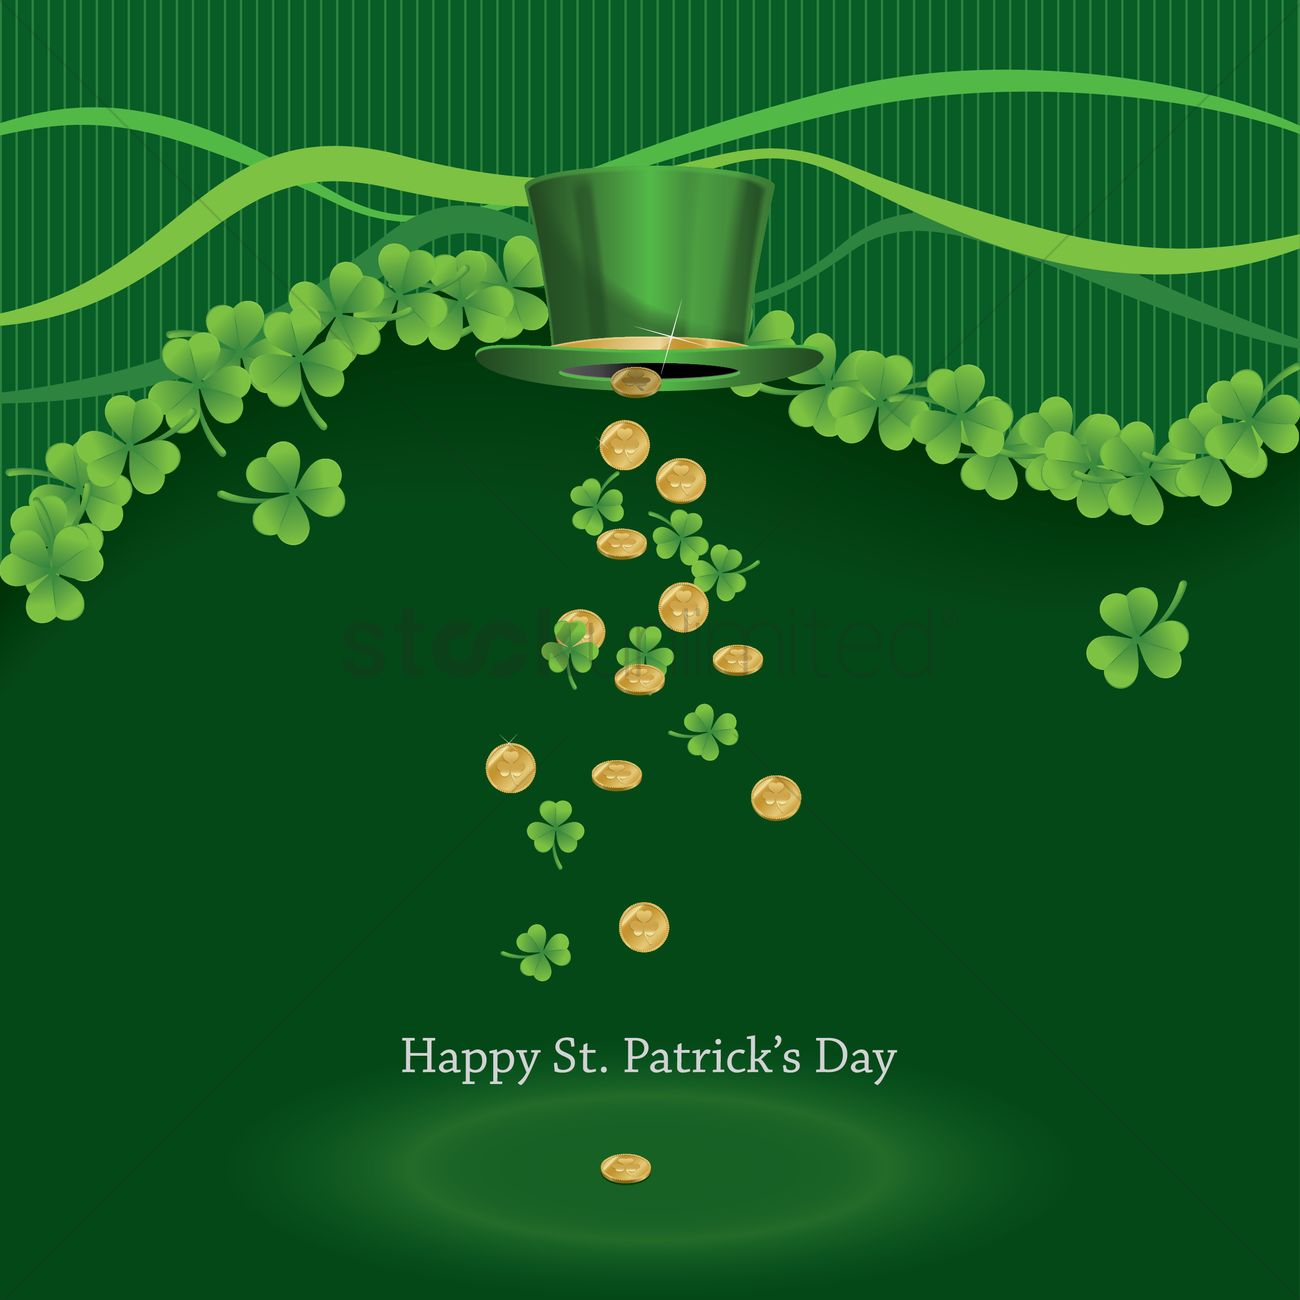 Free Download Happy Stpatricks Day Wallpaper Vector Image